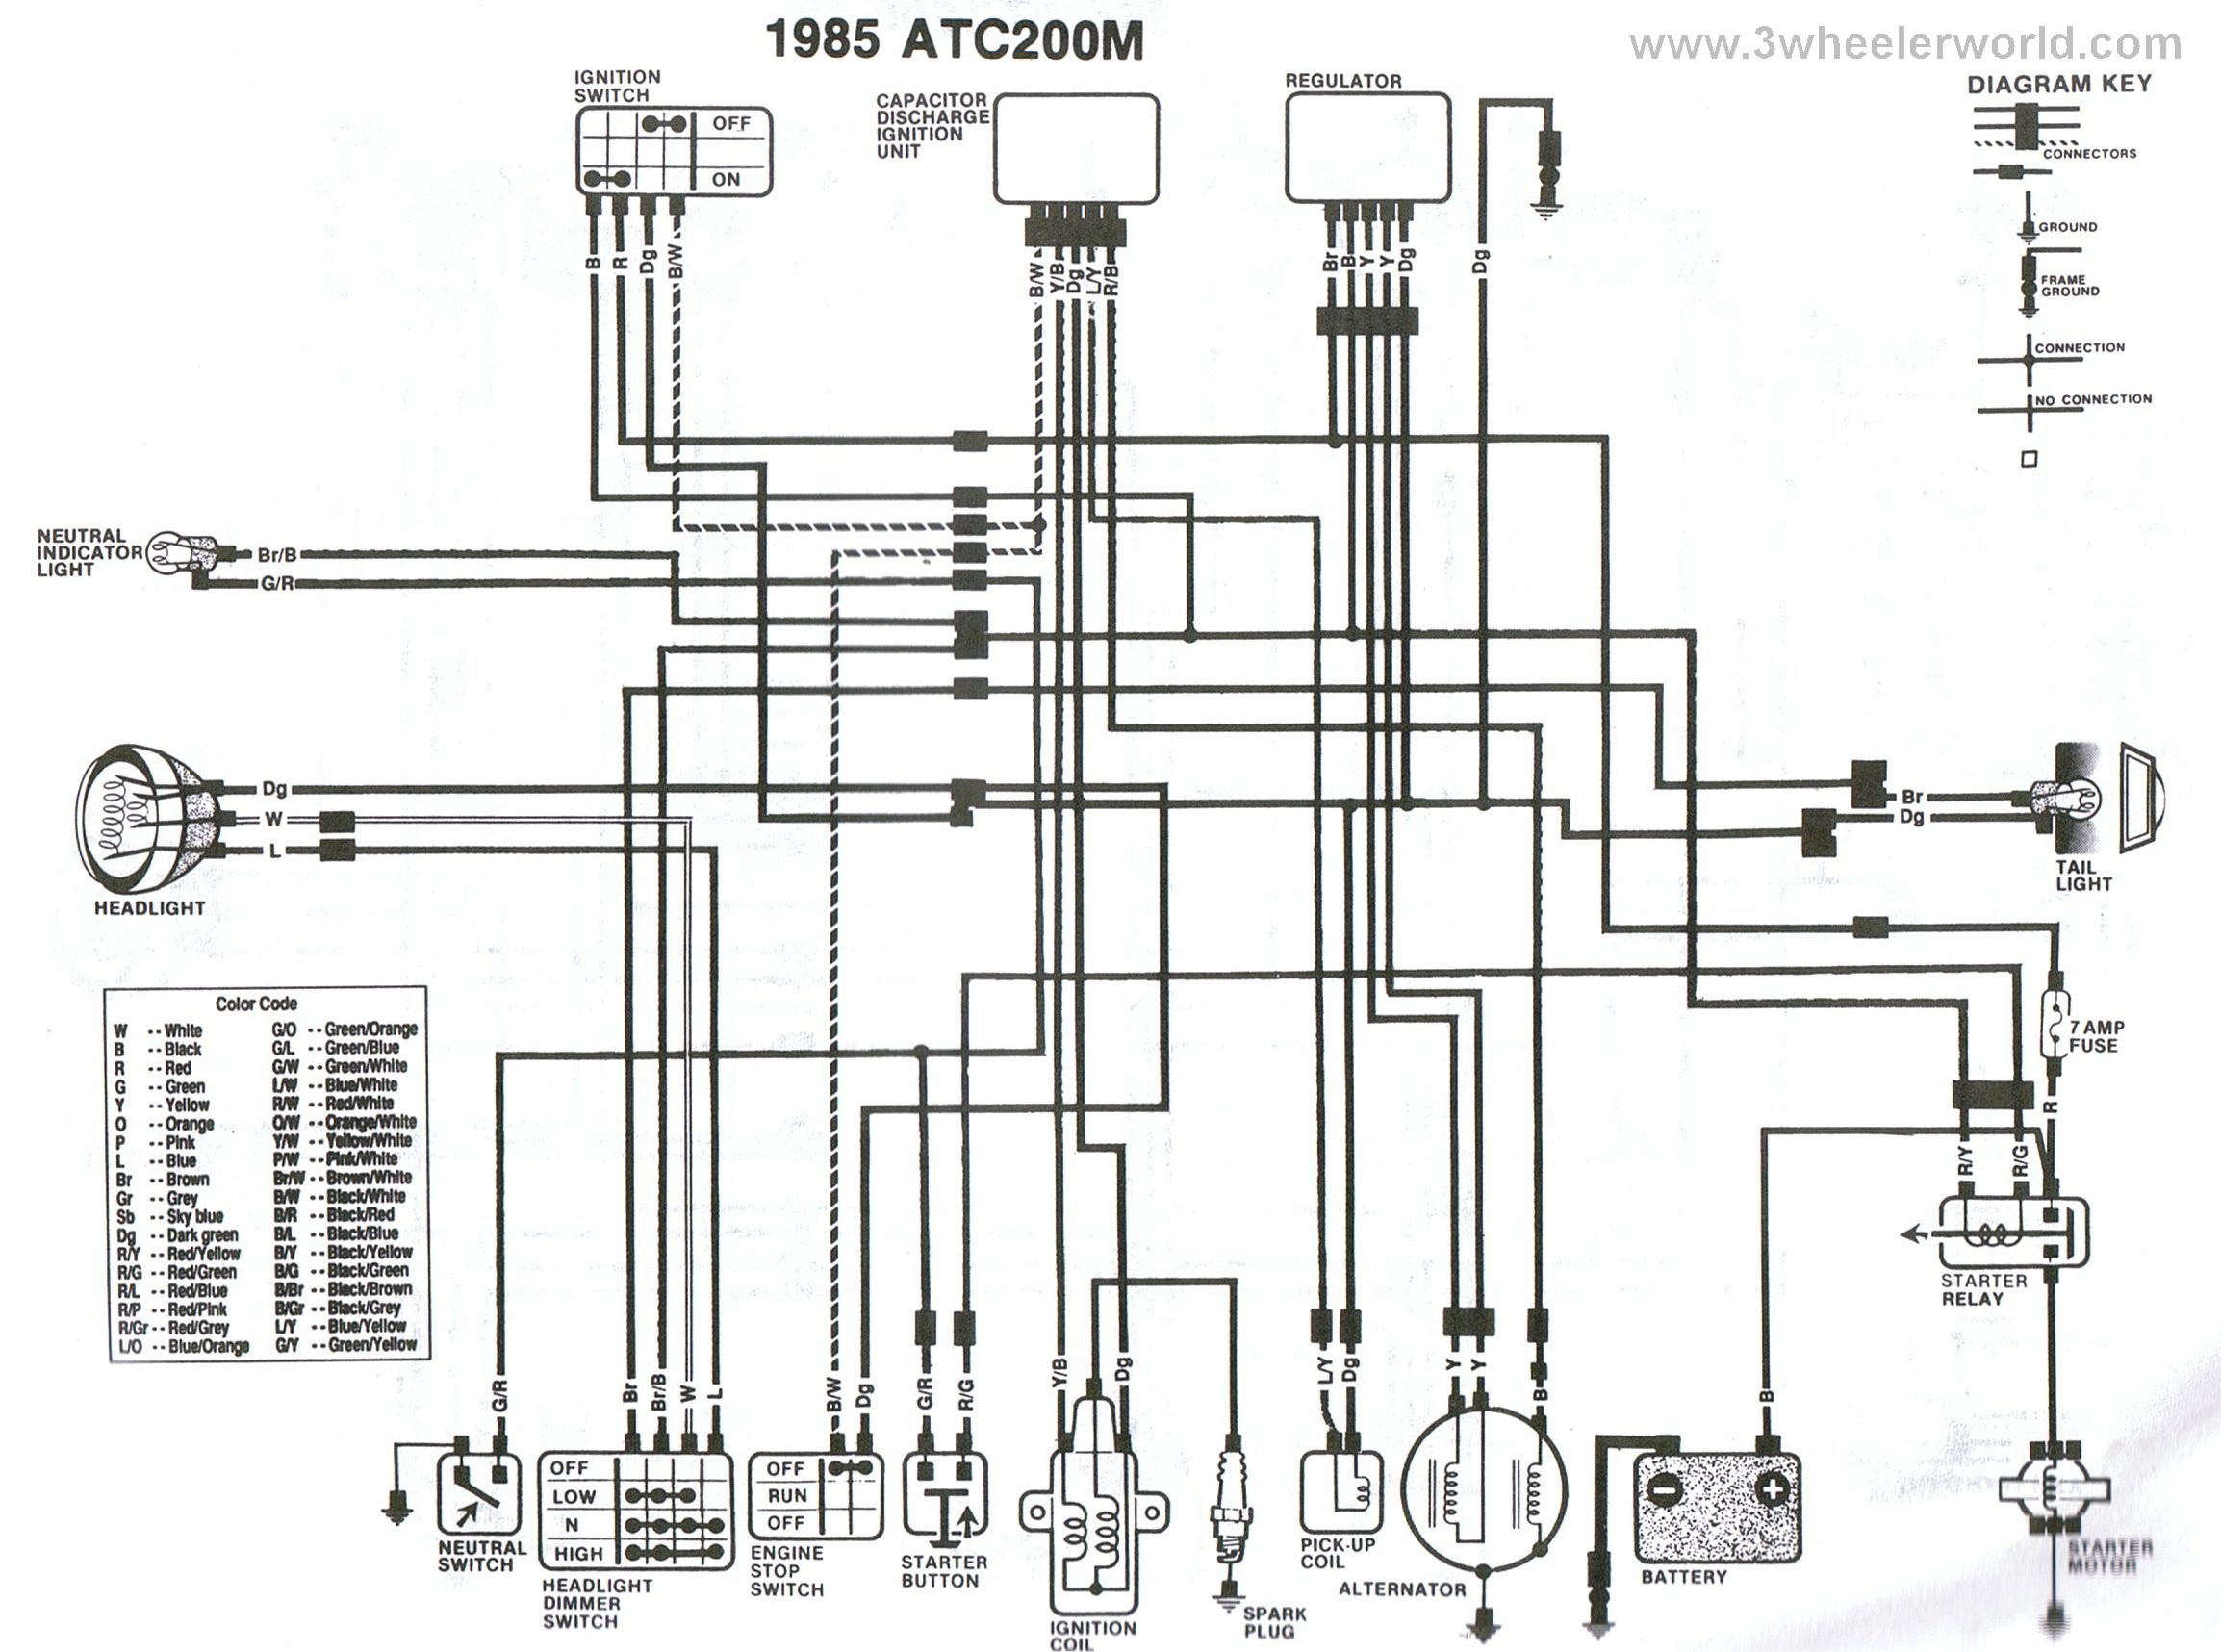 Strange Wrg 9423 Tecumseh Condensing Unit Wiring Diagram Wiring Digital Resources Funapmognl